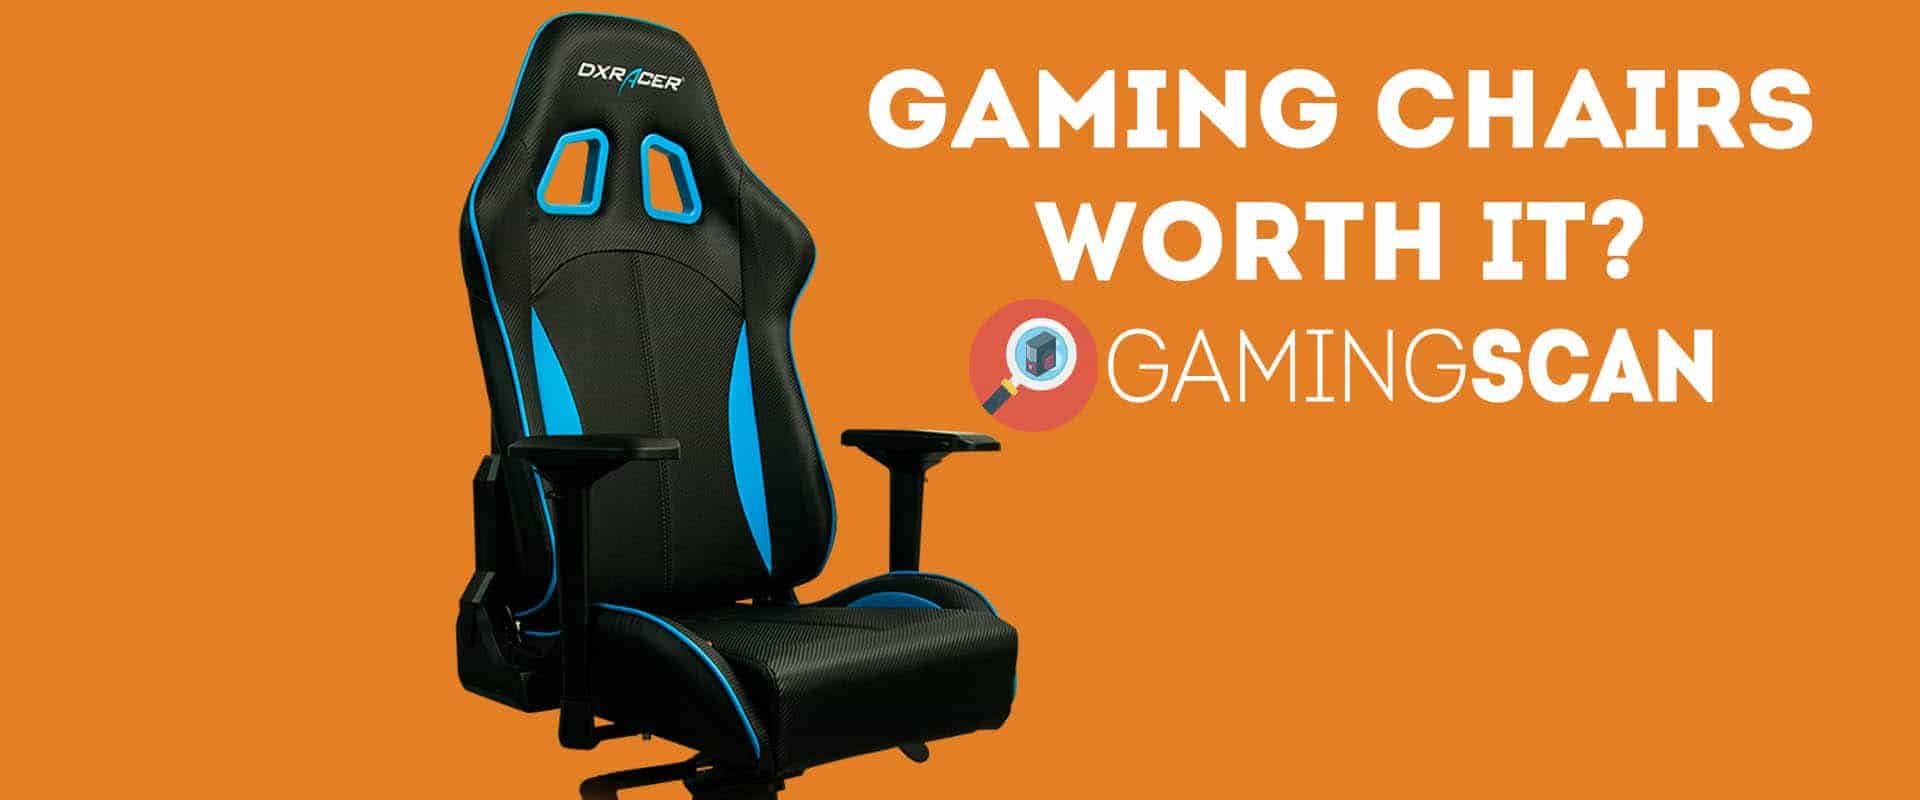 Problems With Racing Gaming Chairs – Gaming Chair Worth It?